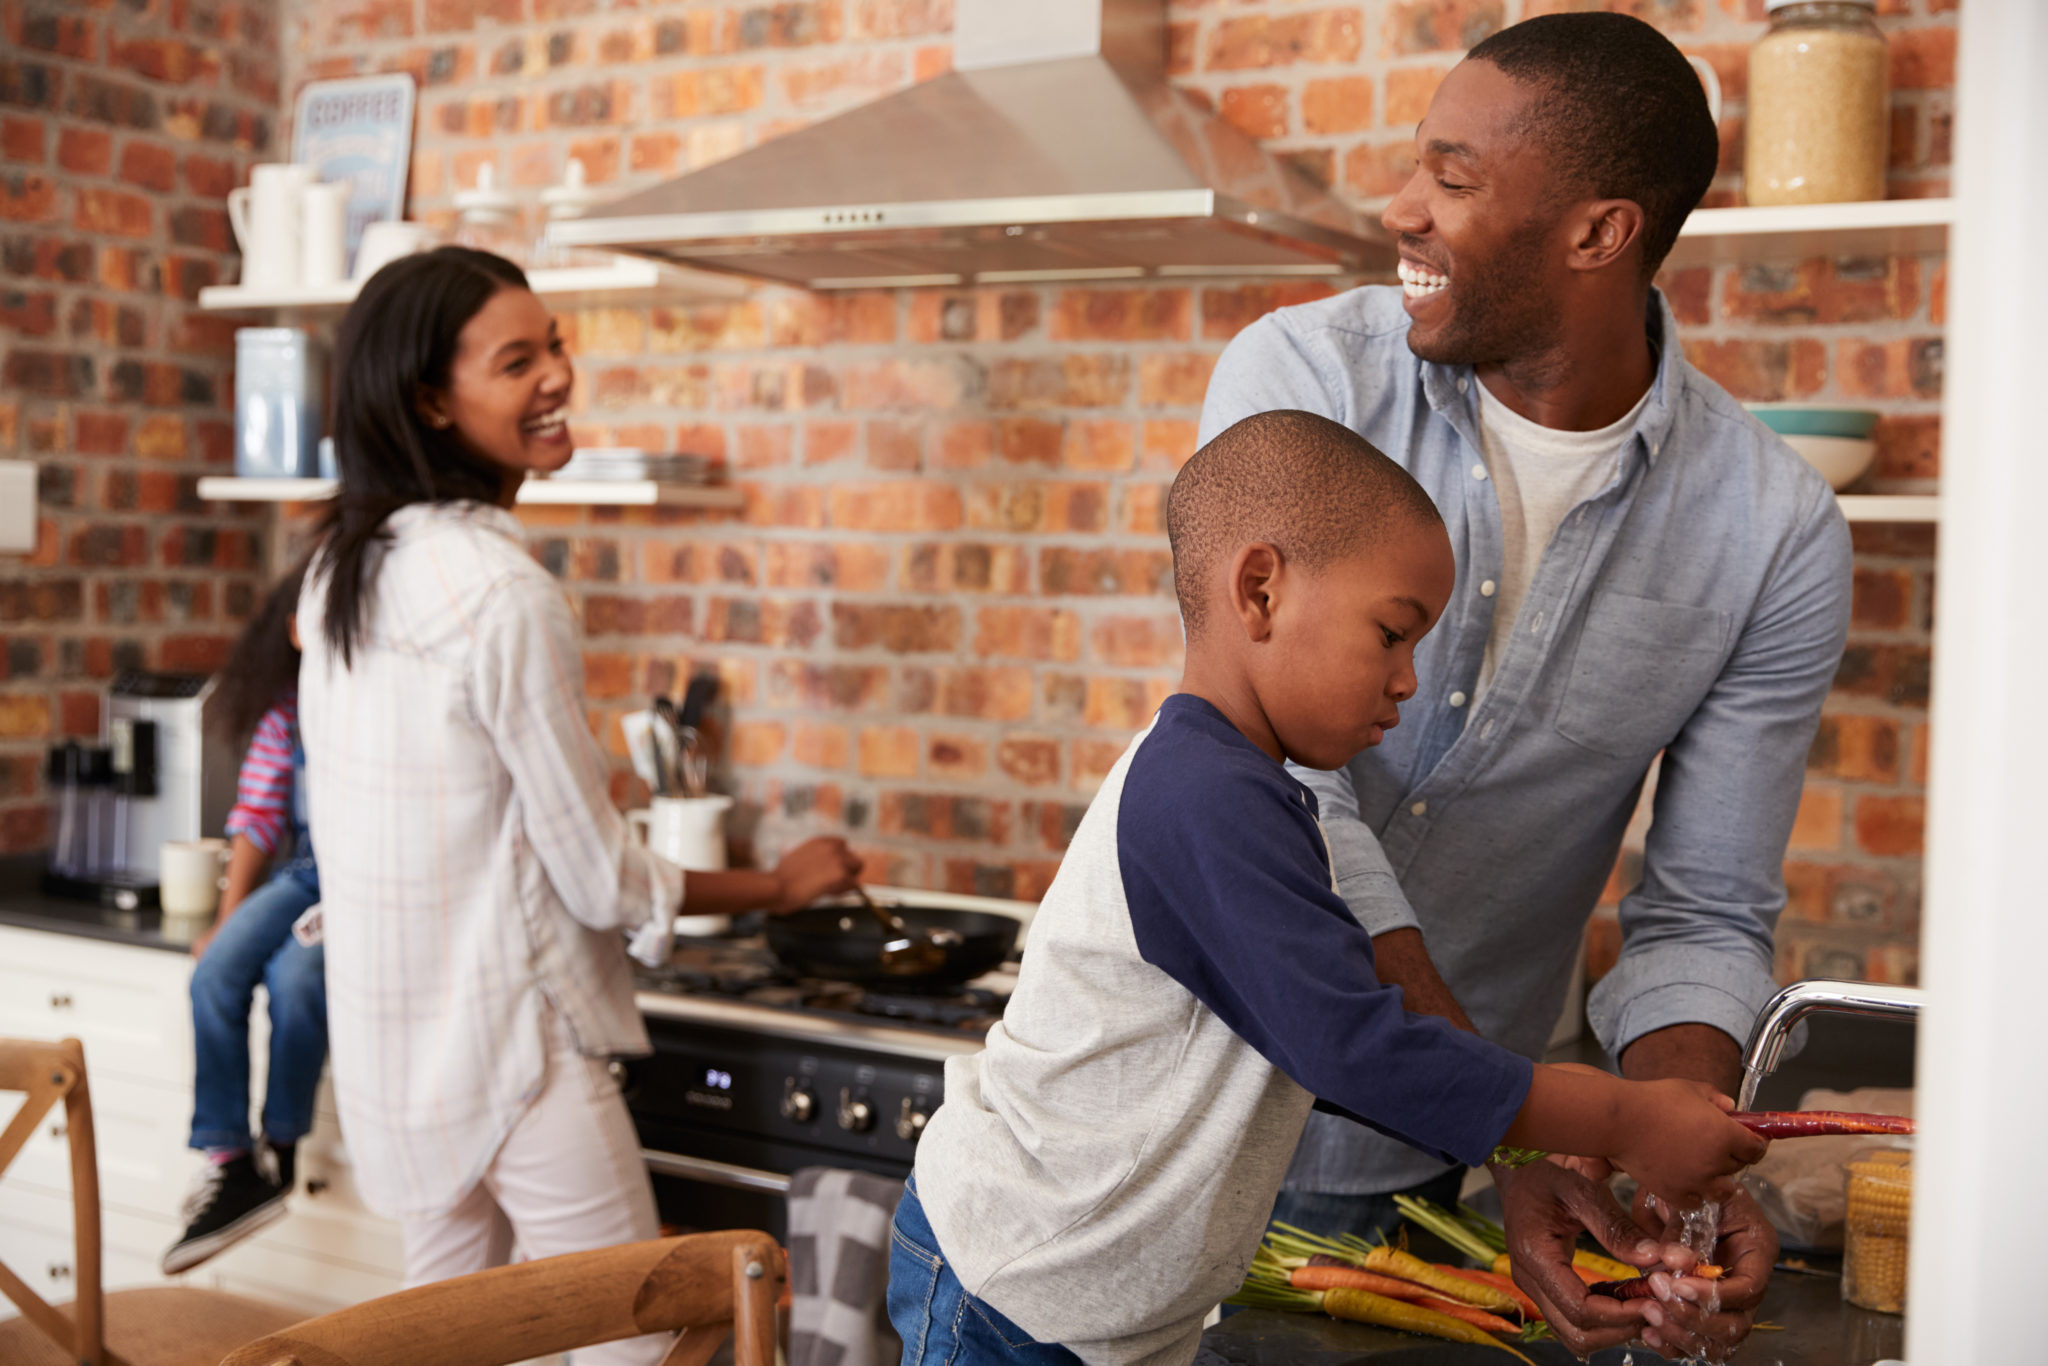 parents with child cooking